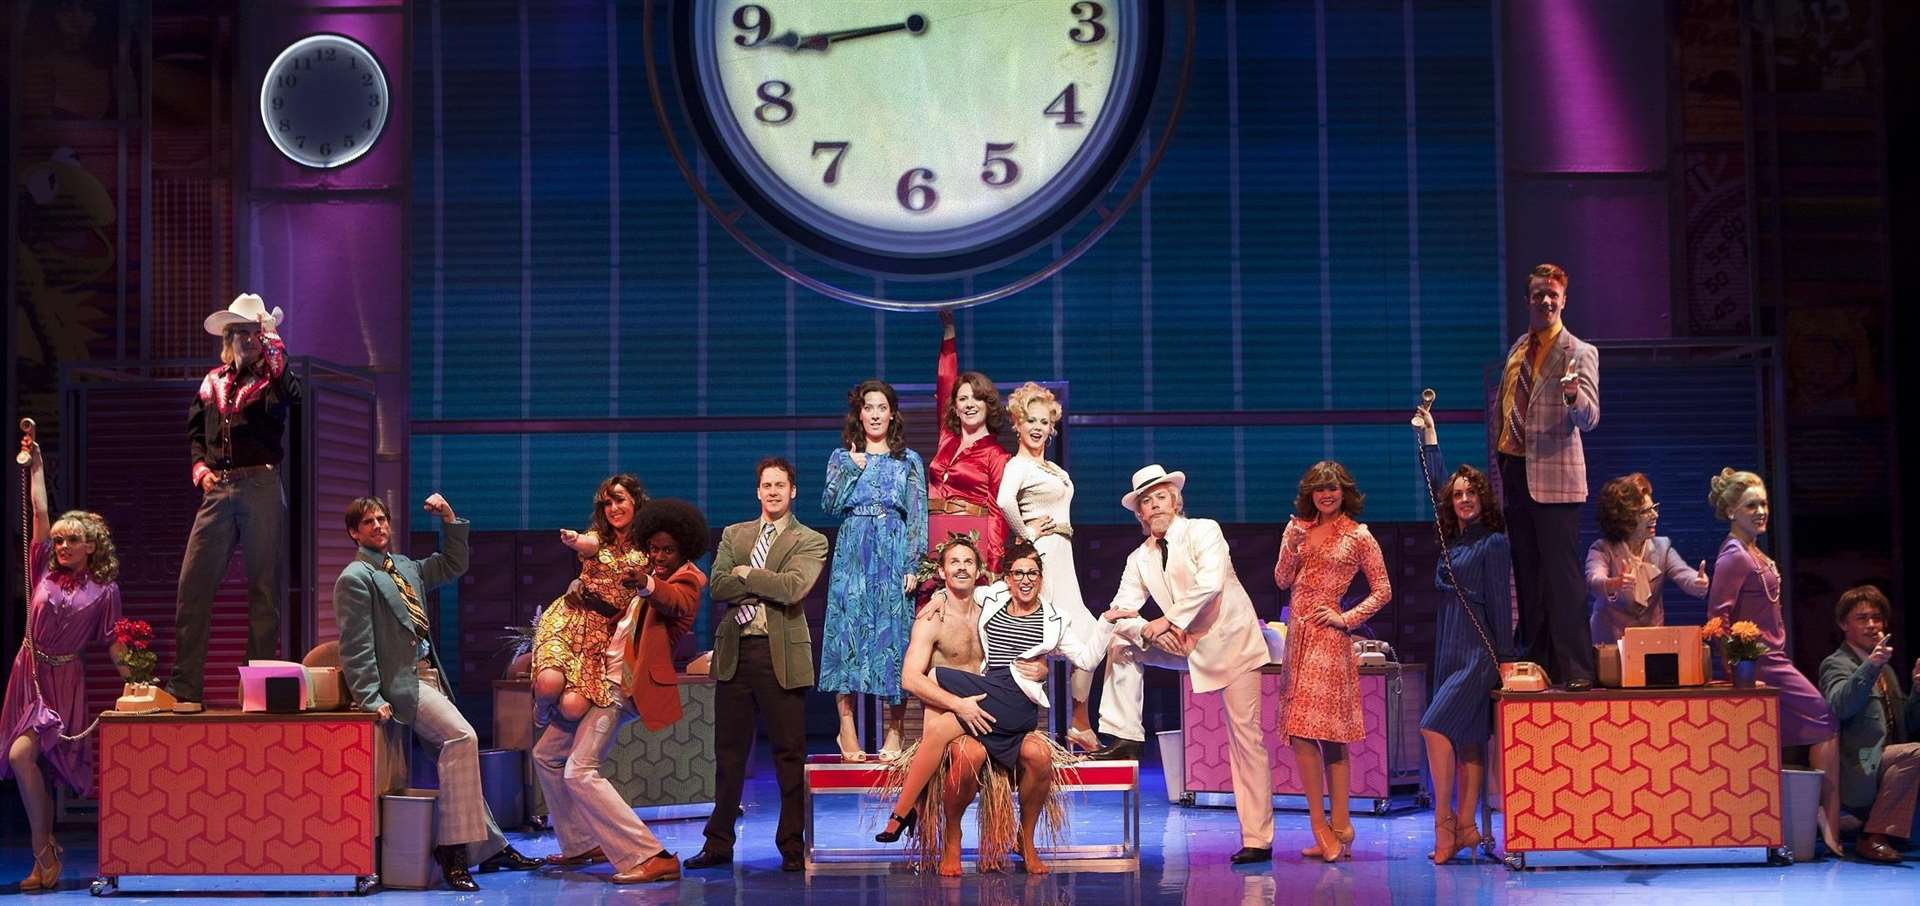 9 to 5 The Musical had made an appearance in the past at the Marlowe Theatre in Canterbury. Those who missed out can head to the West End as of January 28 next year to catch the famous show!